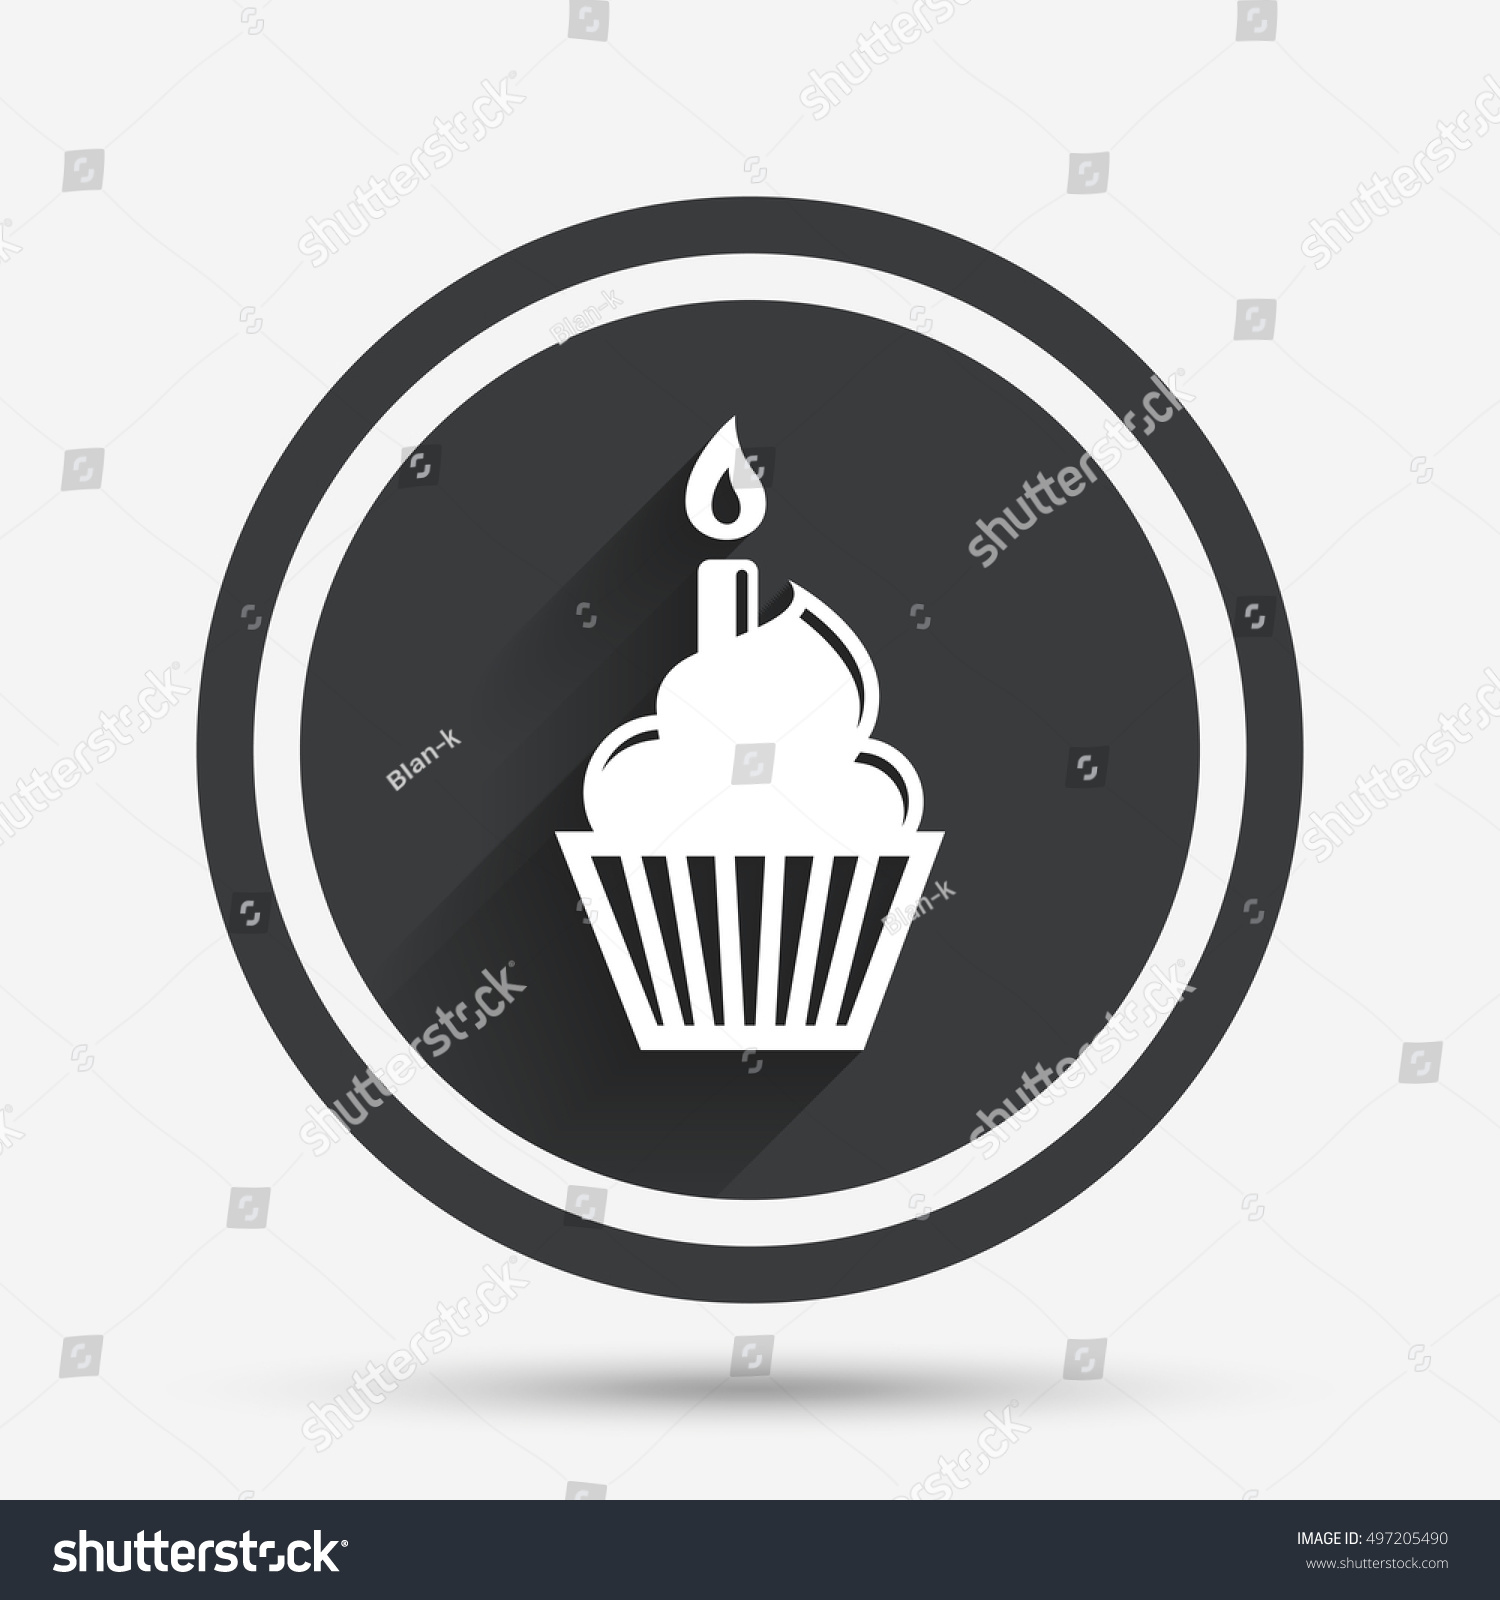 Birthday cake with keyboard symbols image collections symbol and birthday cake sign icon cupcake burning stock vector 497205490 birthday cake sign icon cupcake with burning biocorpaavc